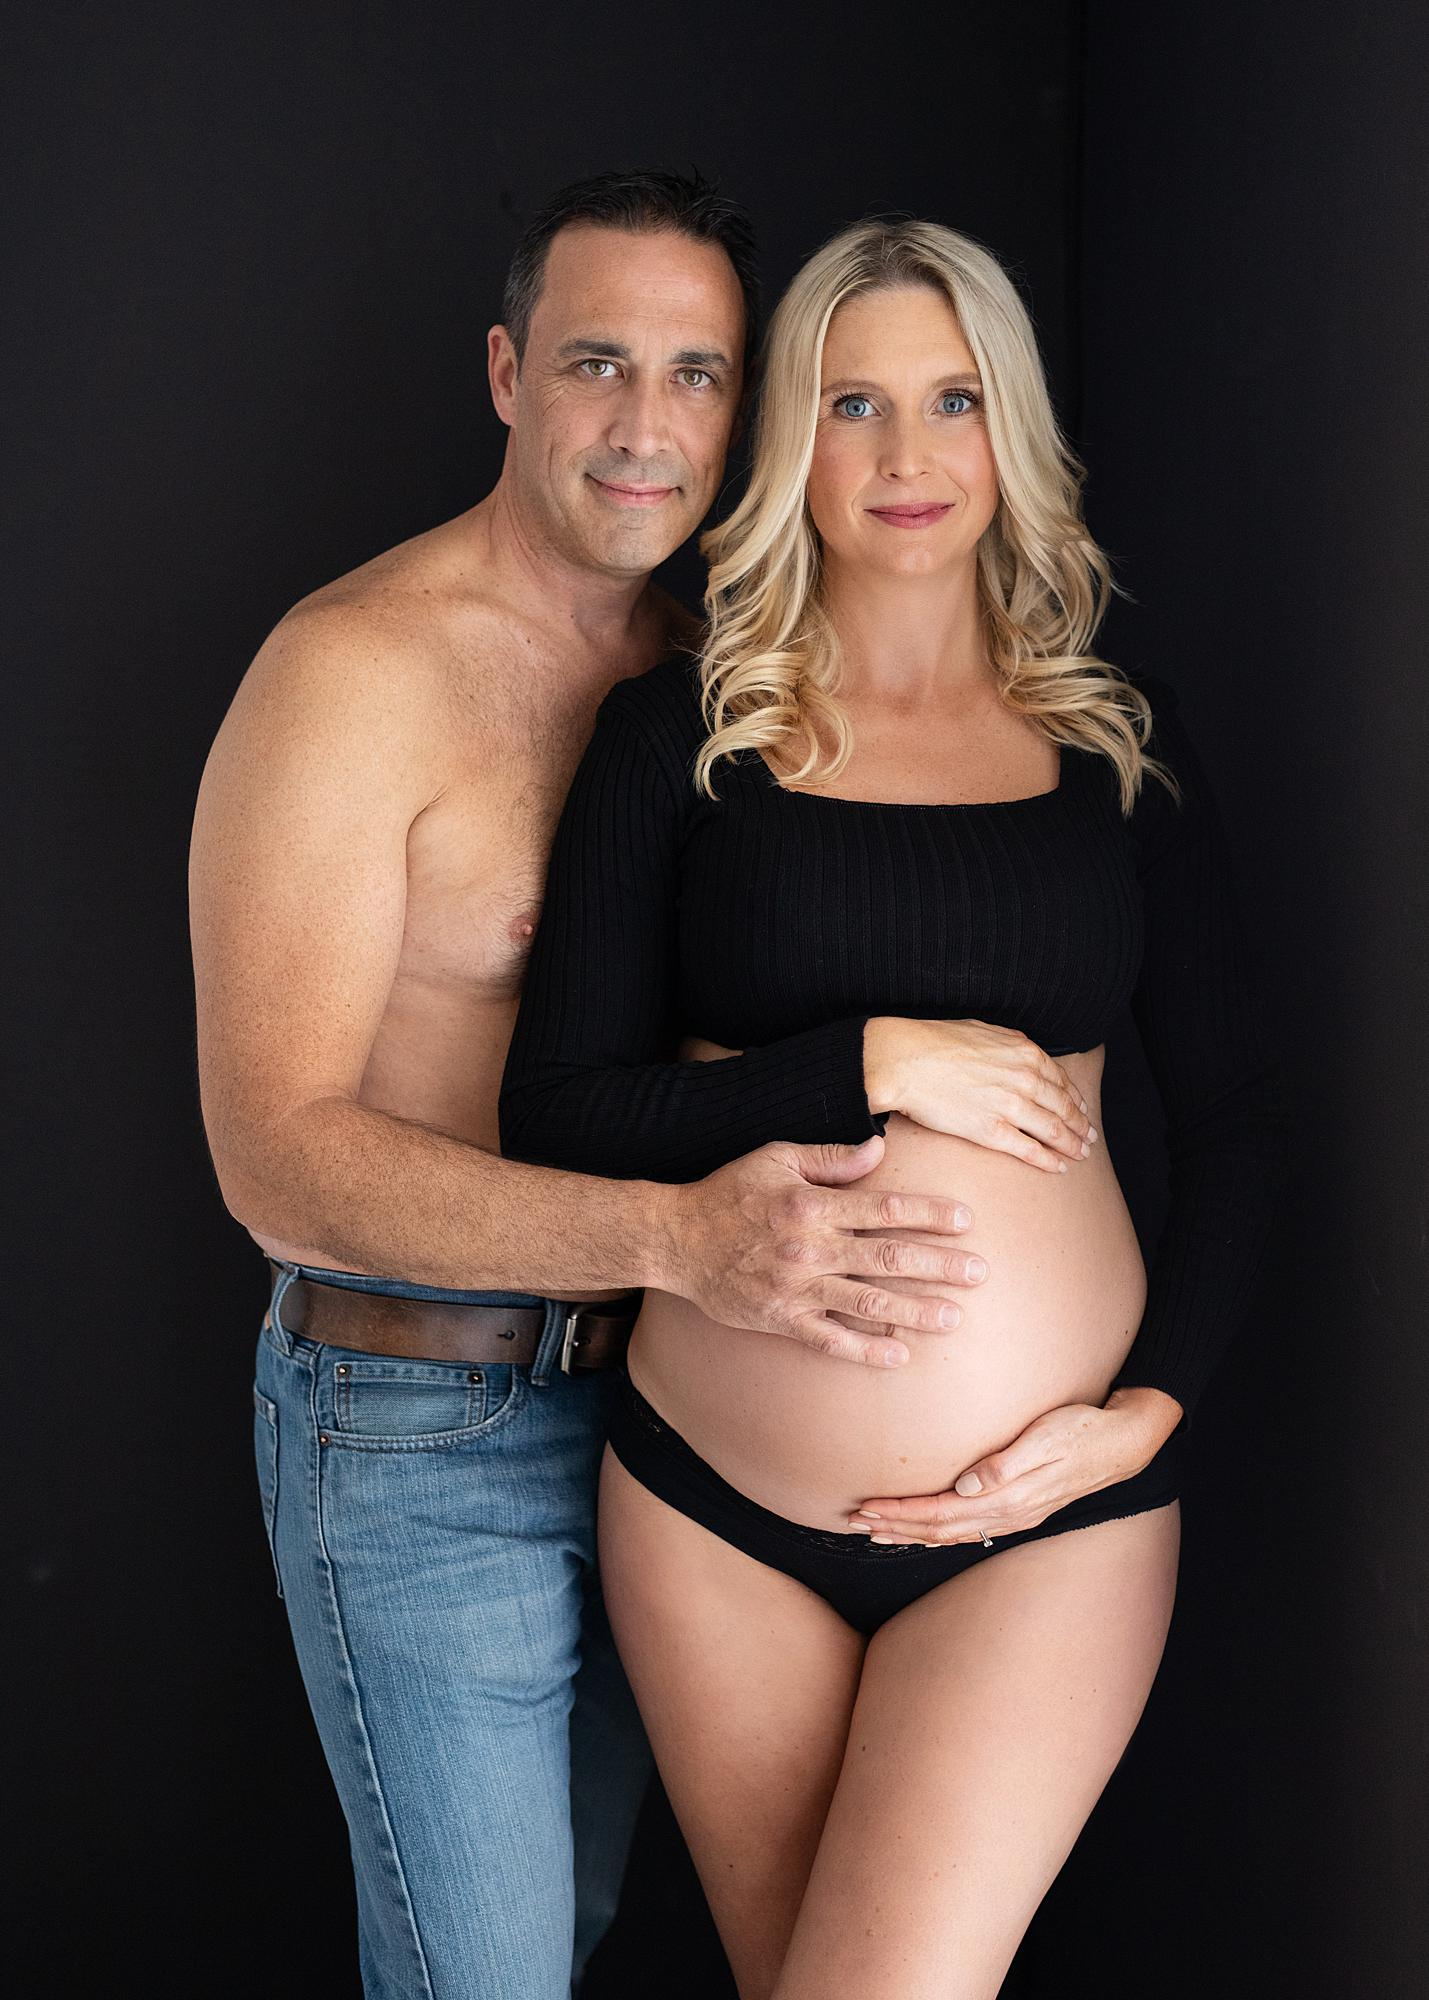 Pregnant woman and her partner posing for a maternity photoshoot in Alison McKenny's Suffolk studio